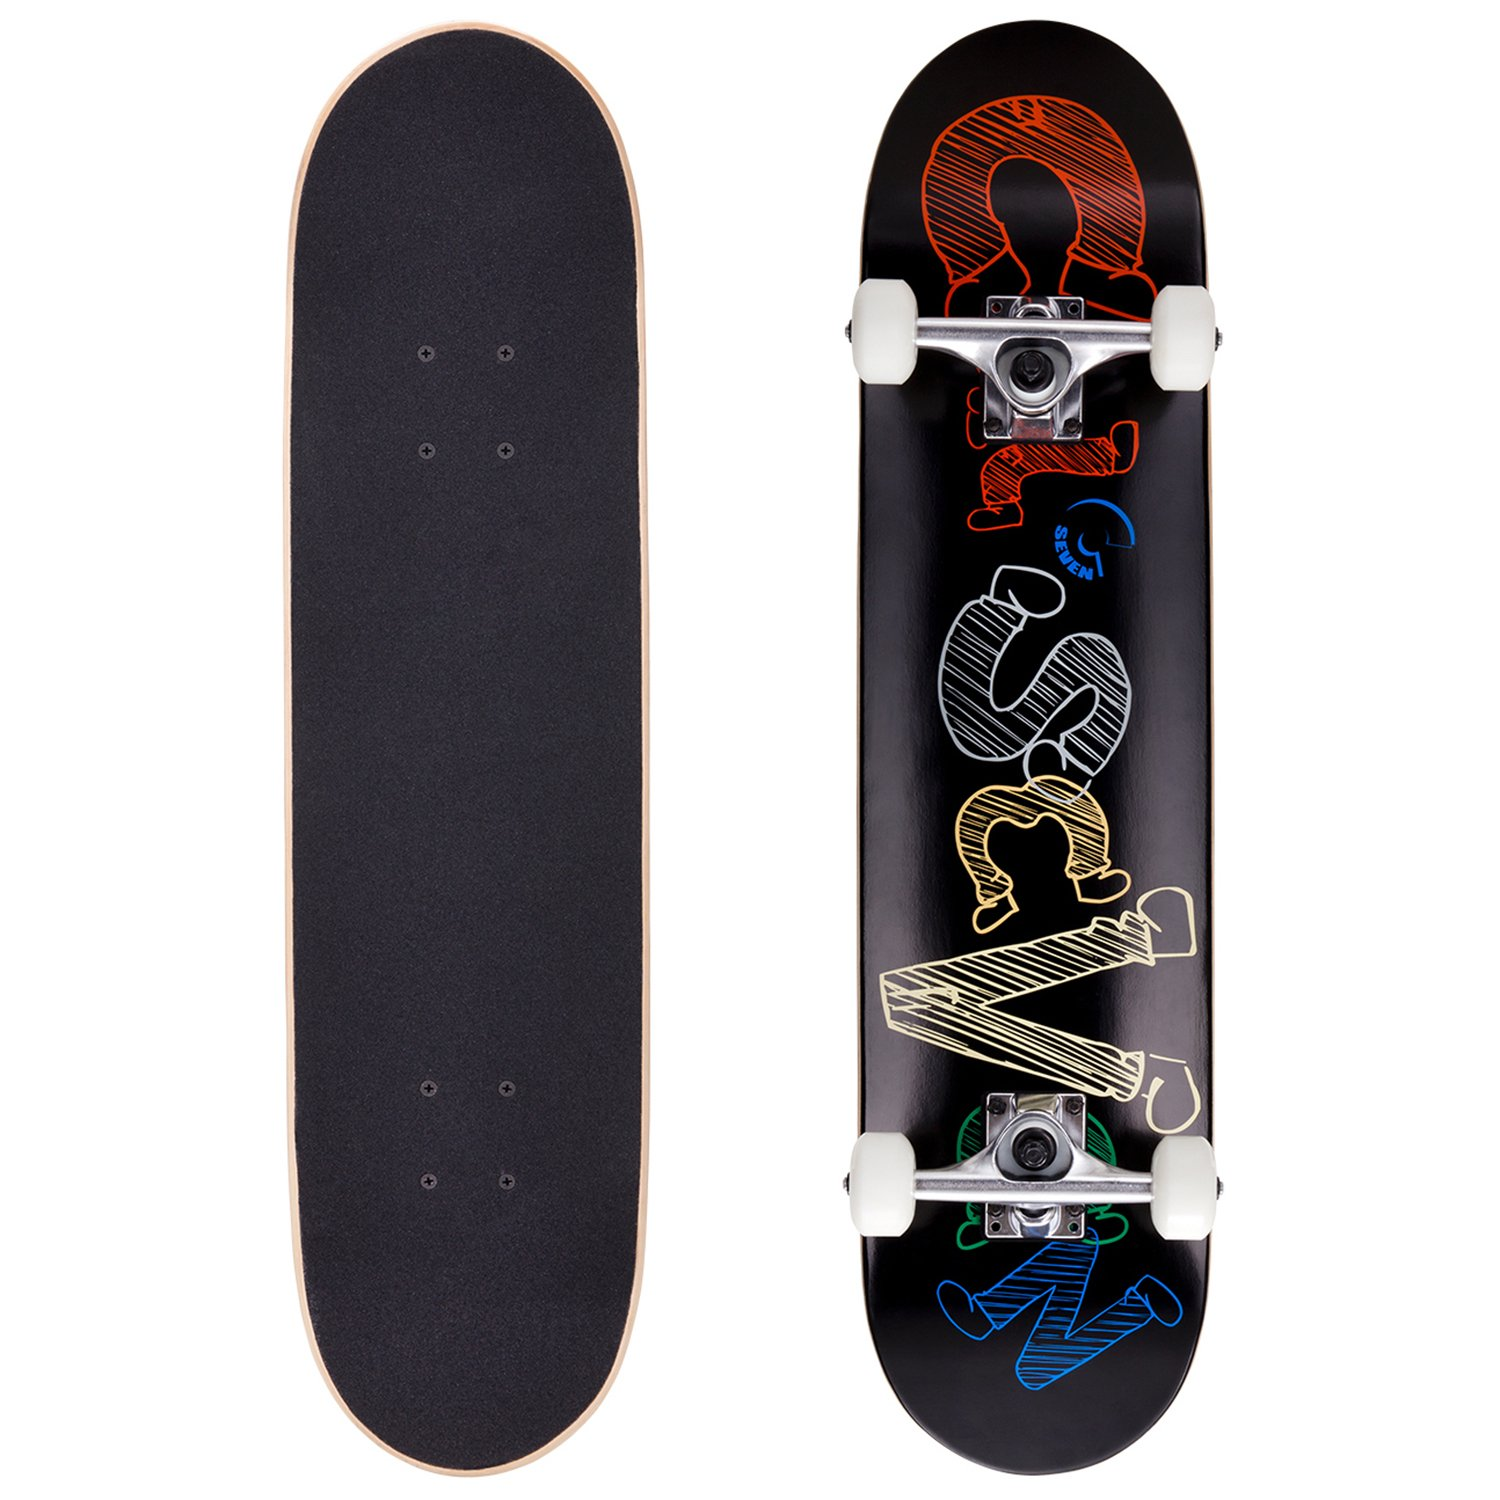 Cal 7 Complete Skateboard, Popsicle Double Kicktail Maple Deck, Skate Styles in Graphic Designs (7.5'' Fresno)